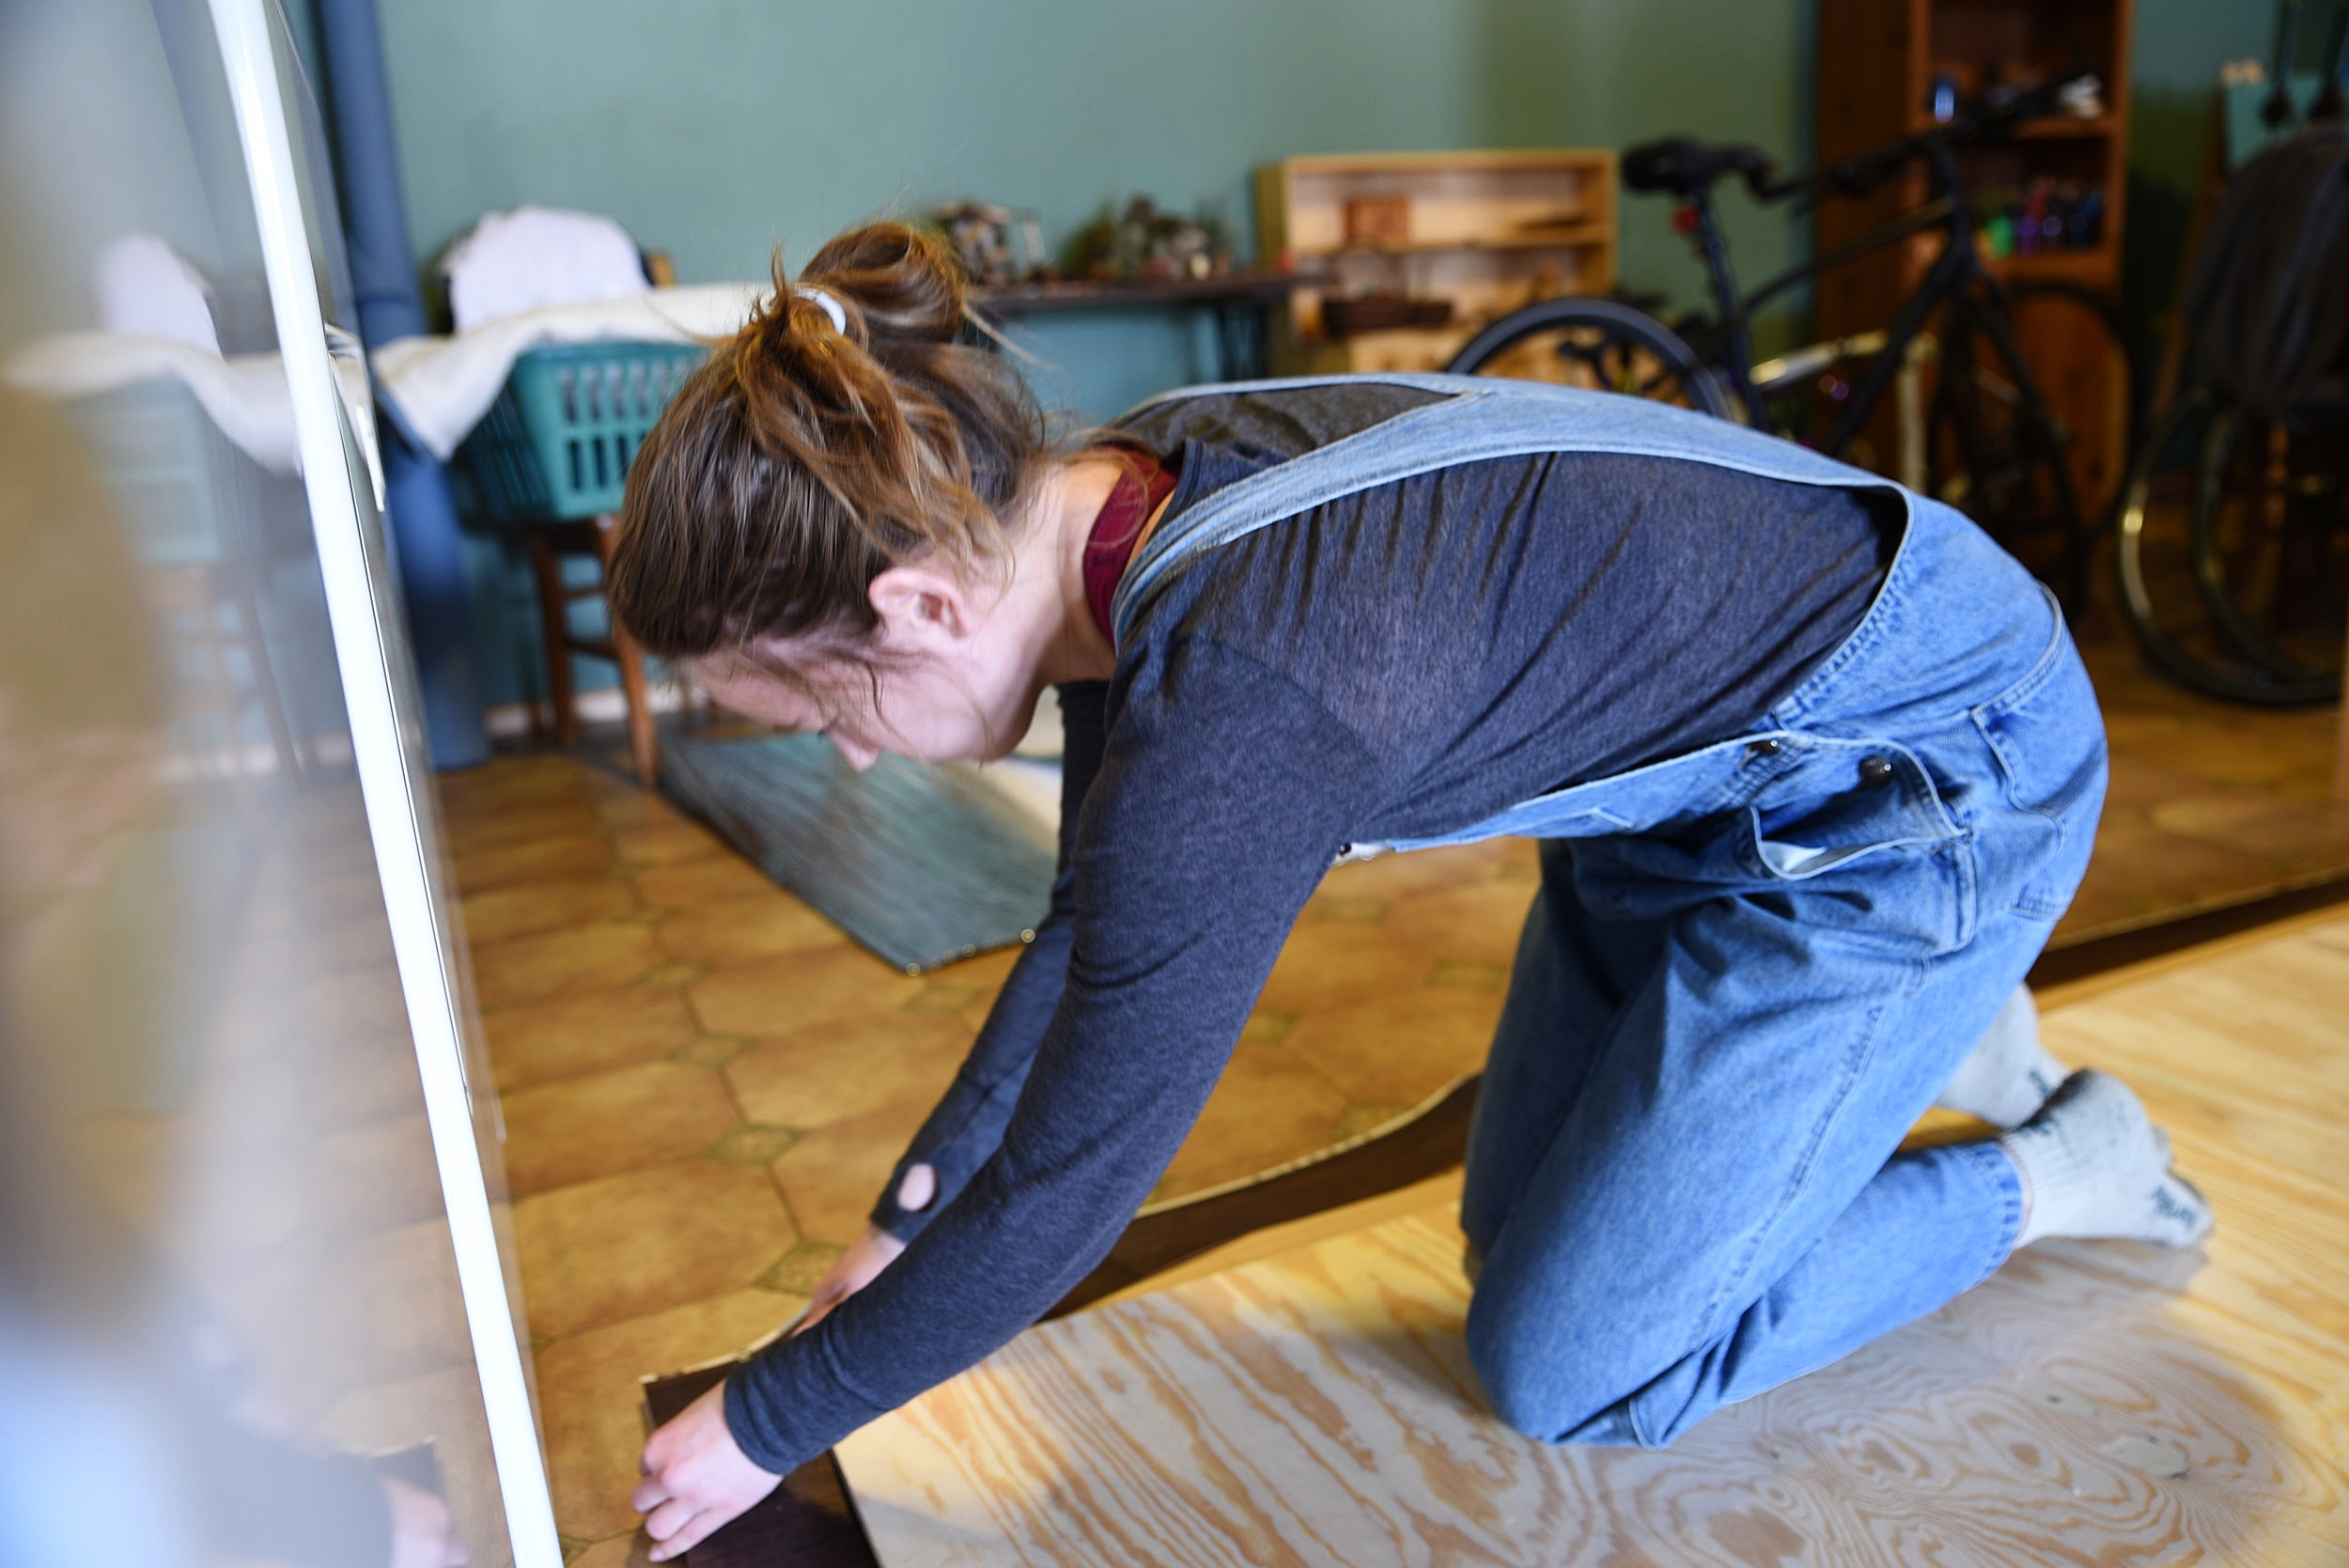 Kaylee uses a utility knife to cut the vinyl sheet flooring.